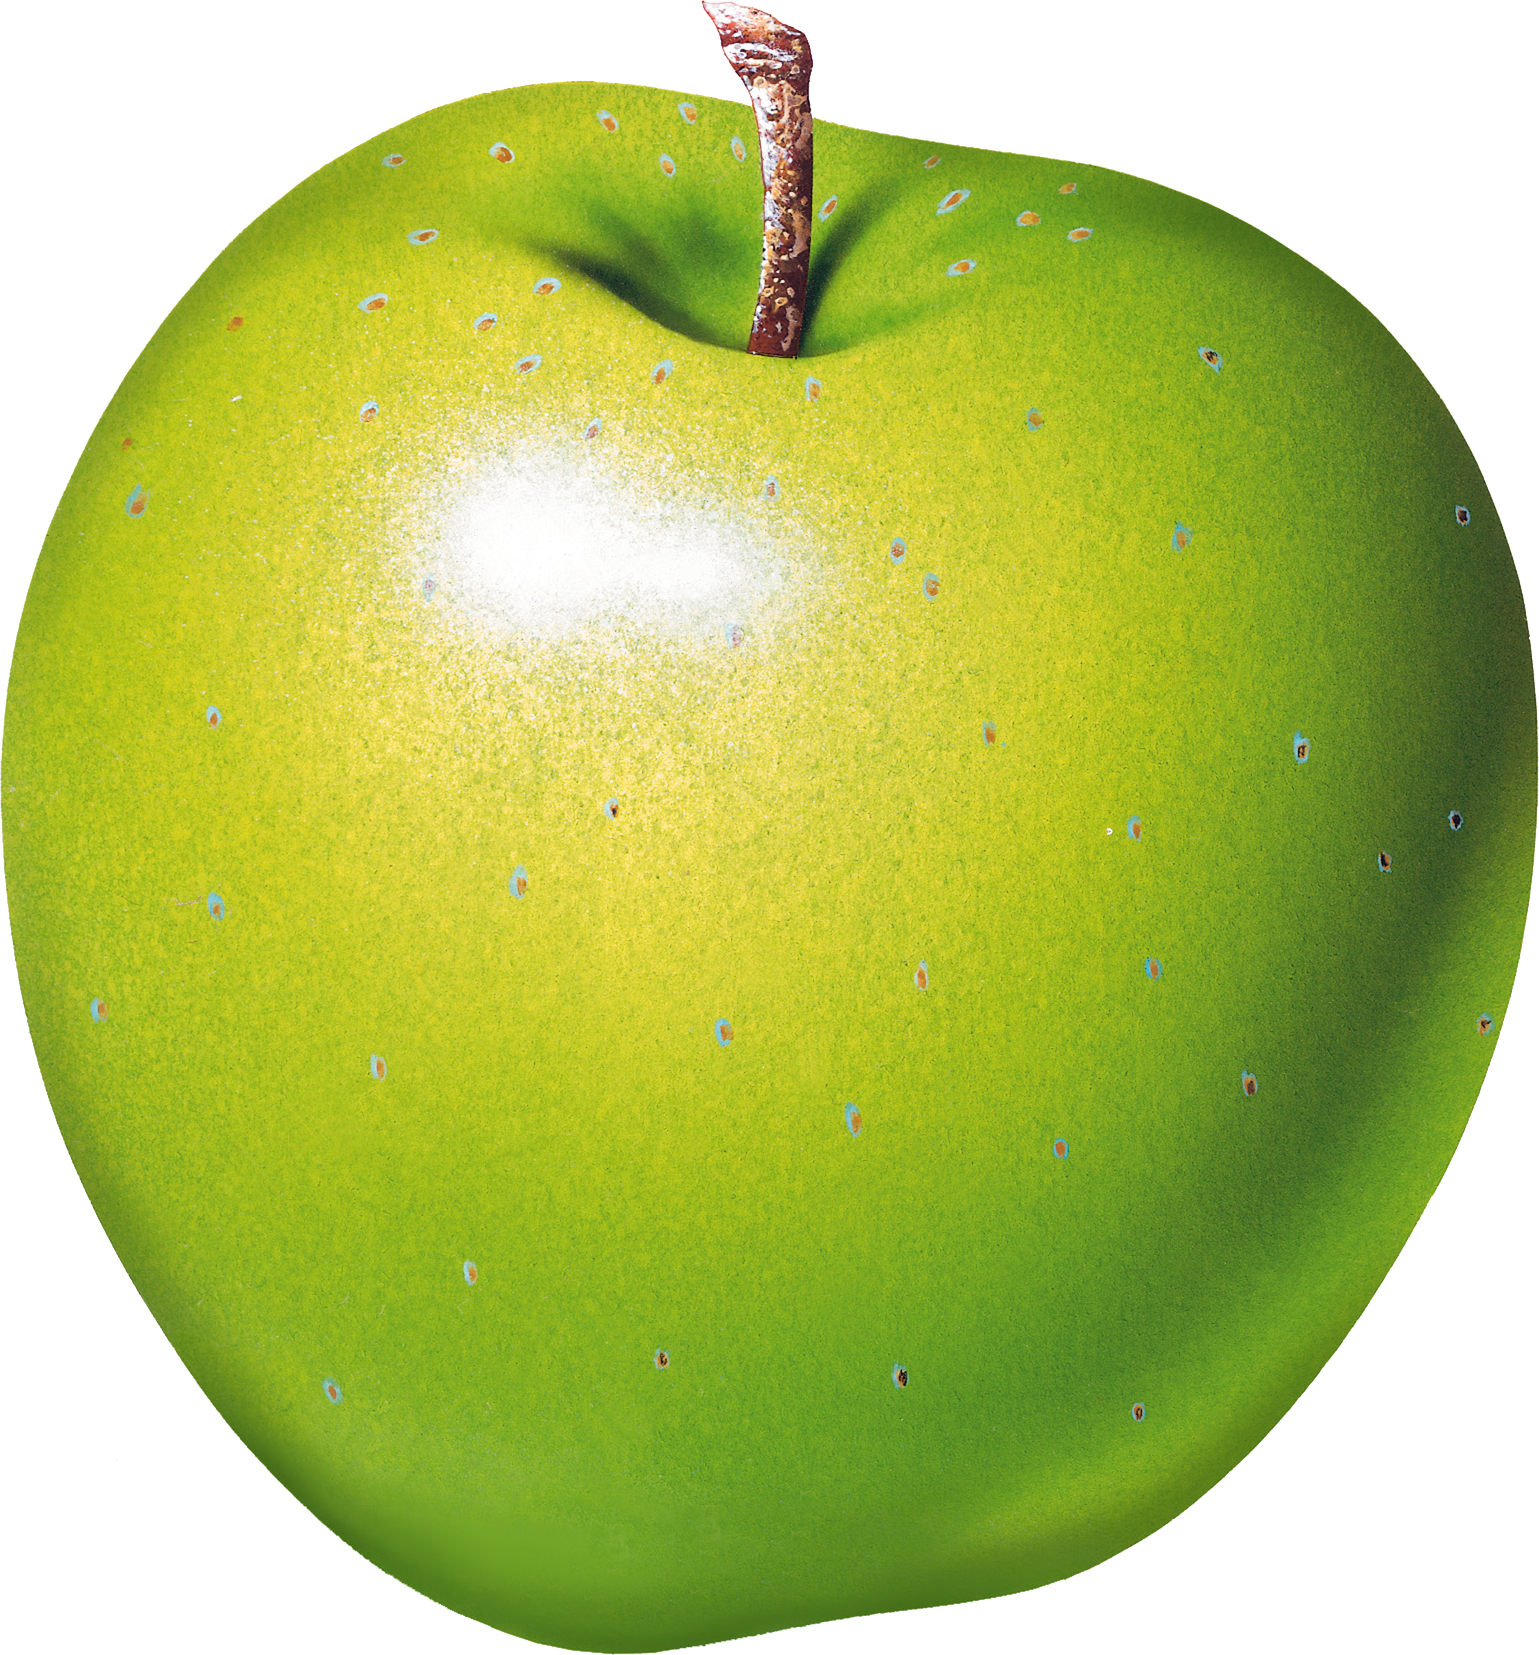 Apple emoji clipart jpg black and white stock Green Apple's PNG Image - PurePNG | Free transparent CC0 PNG Image ... jpg black and white stock